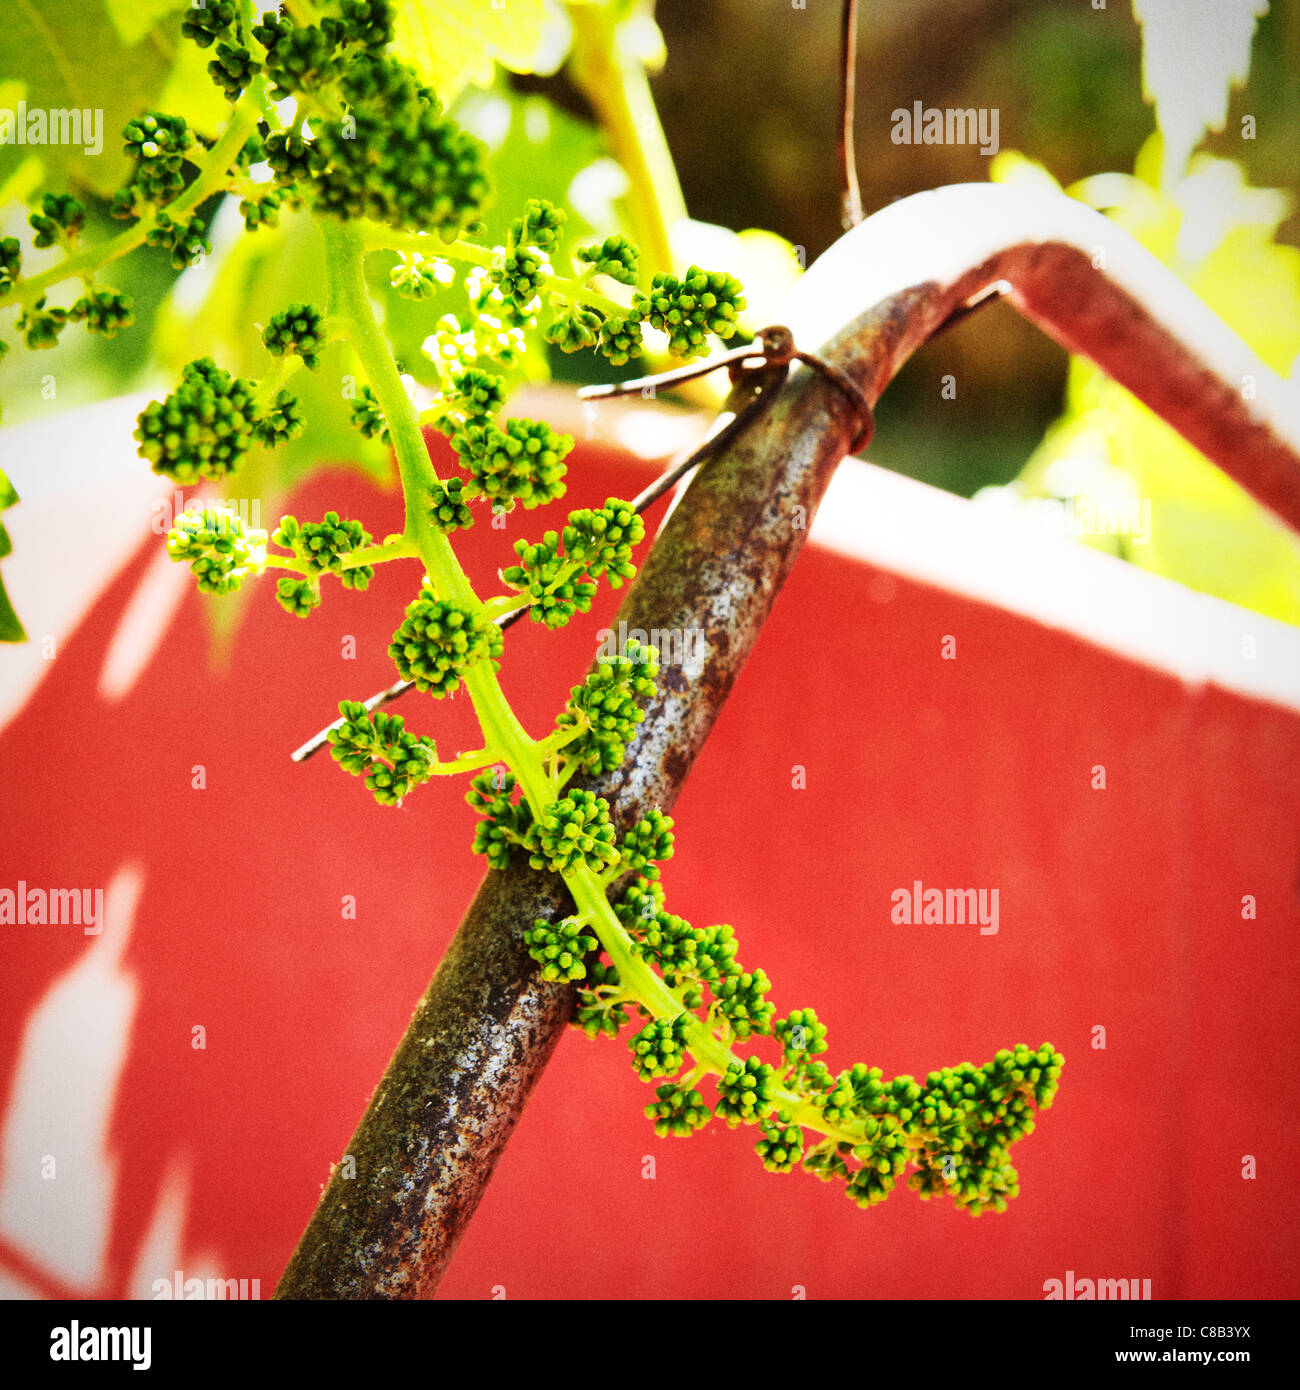 Grapes on a vine at a vineyard in Mendoza, Argentina. - Stock Image